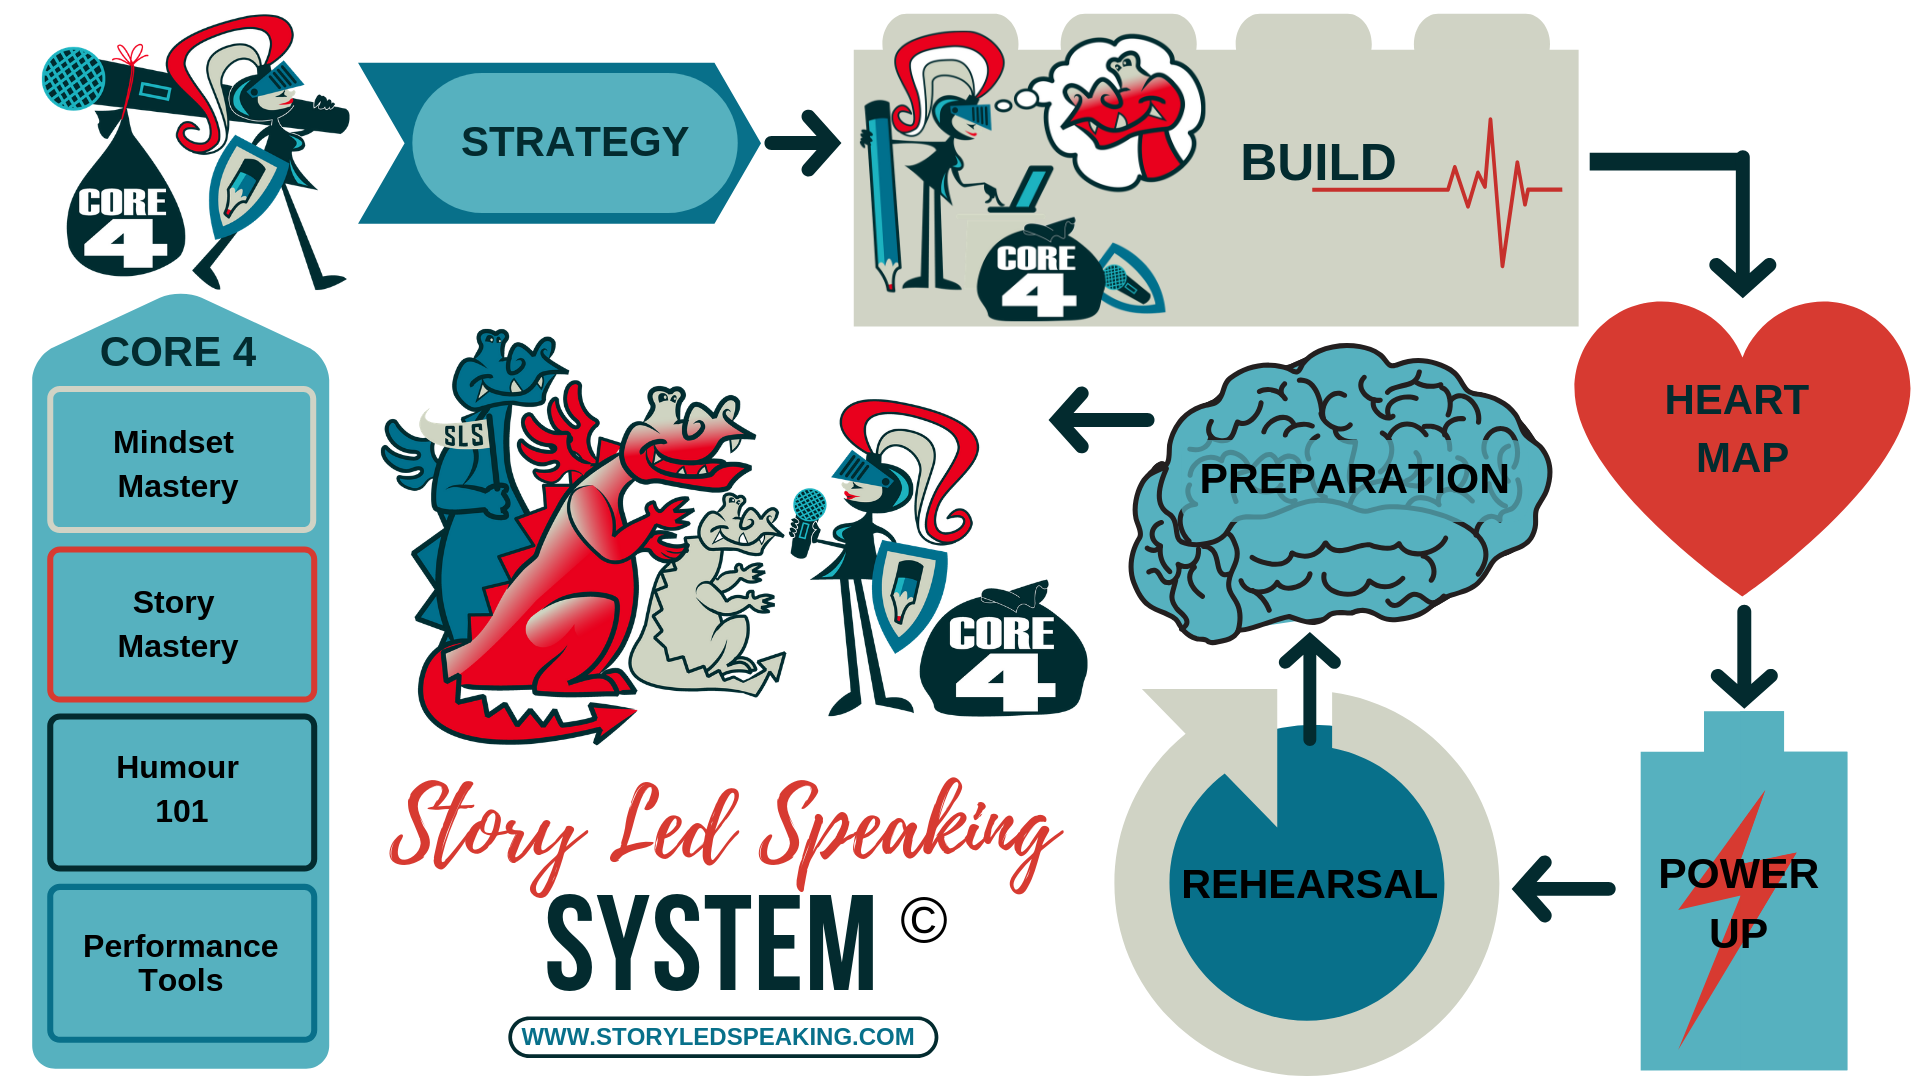 Story Led Speaking Road Map